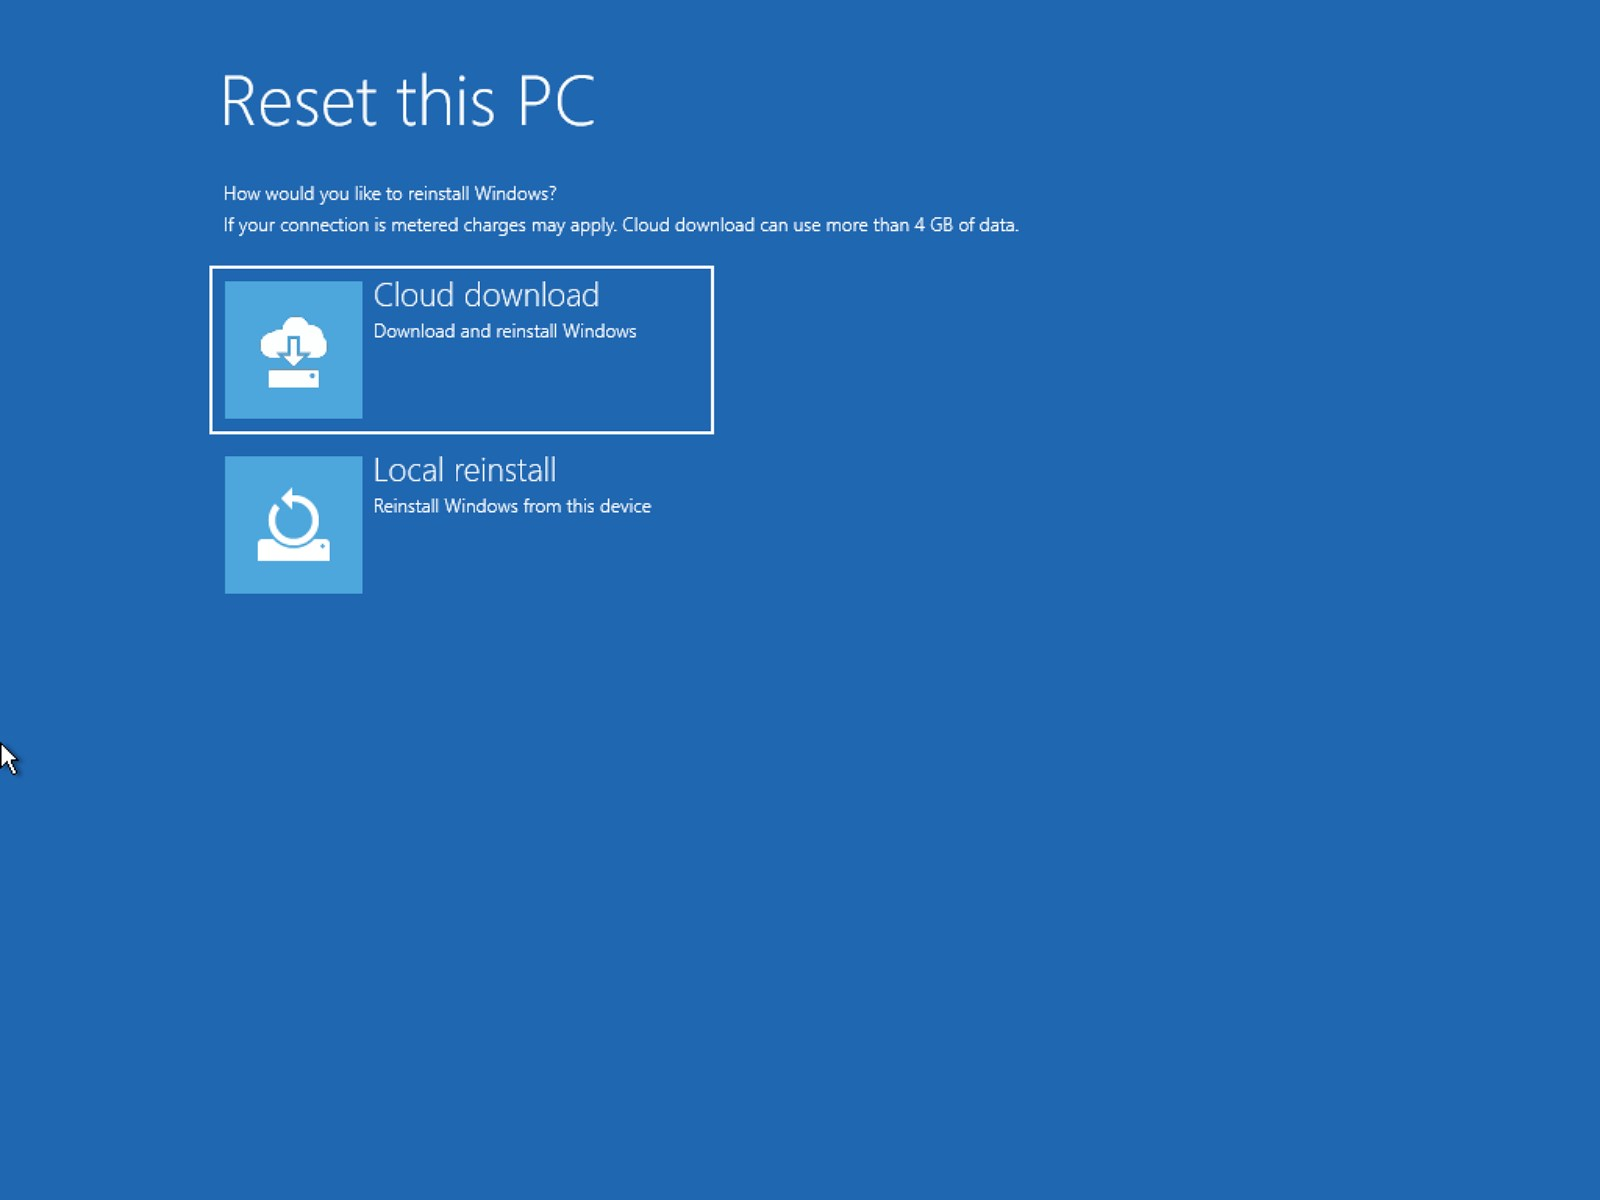 Reset this PC with cloud download option from Windows 10 advanced startup